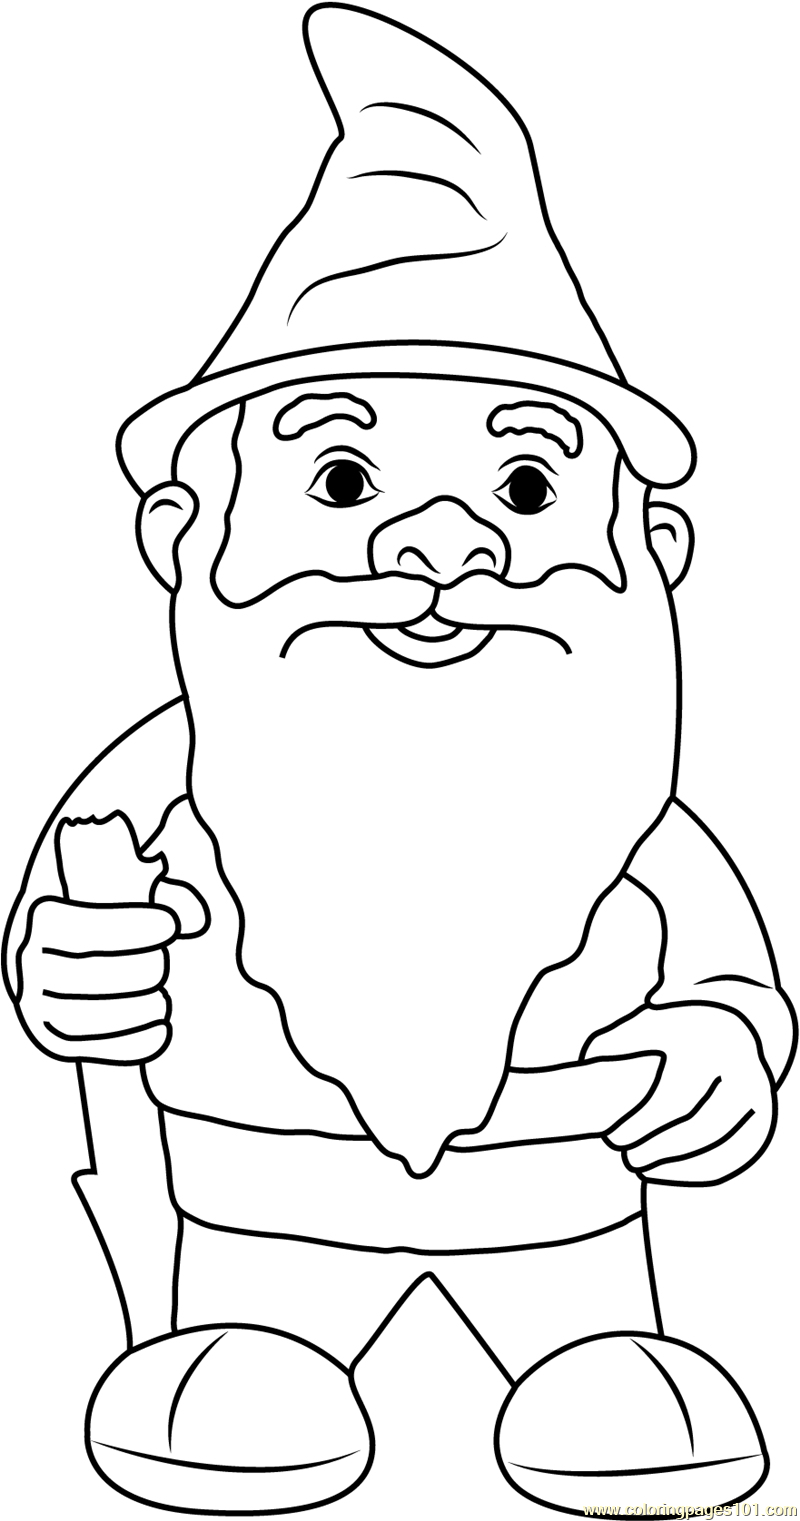 Garden gnome with fluffy beard coloring page free gnomeo for Coloring pages gnomes